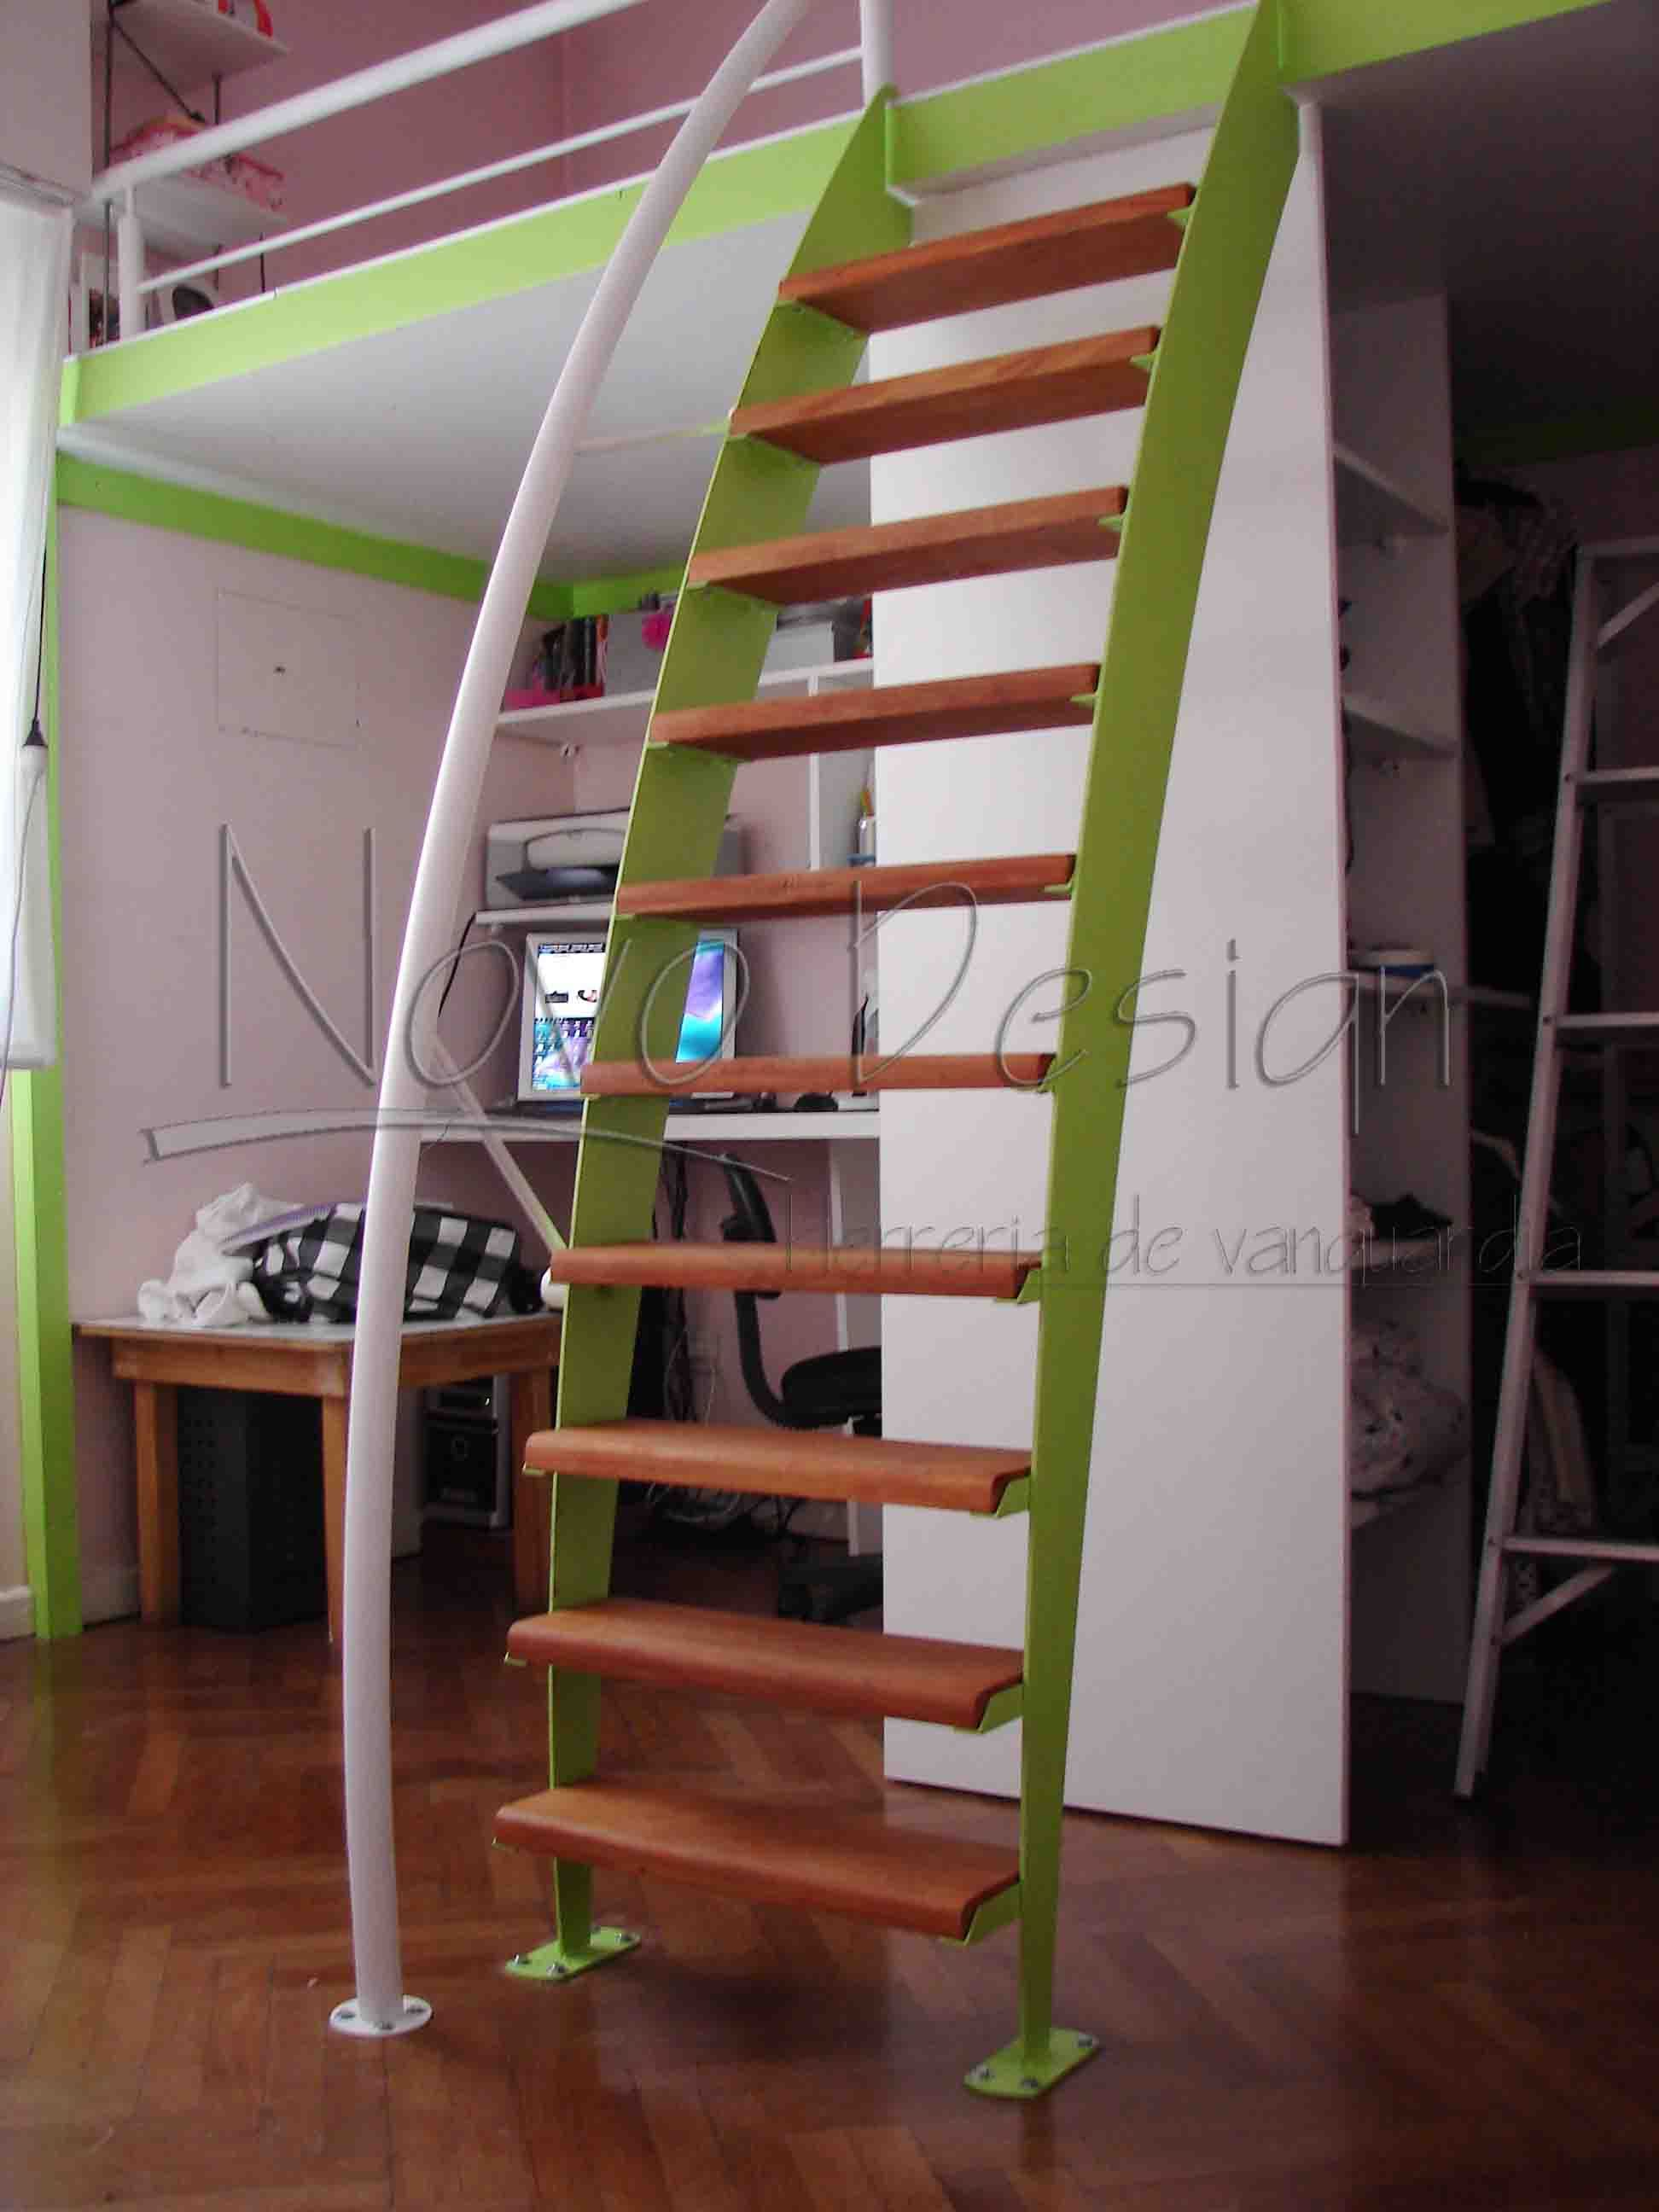 Best 25 escaleras espacios reducidos ideas on pinterest for Escalera caracol 2 pisos